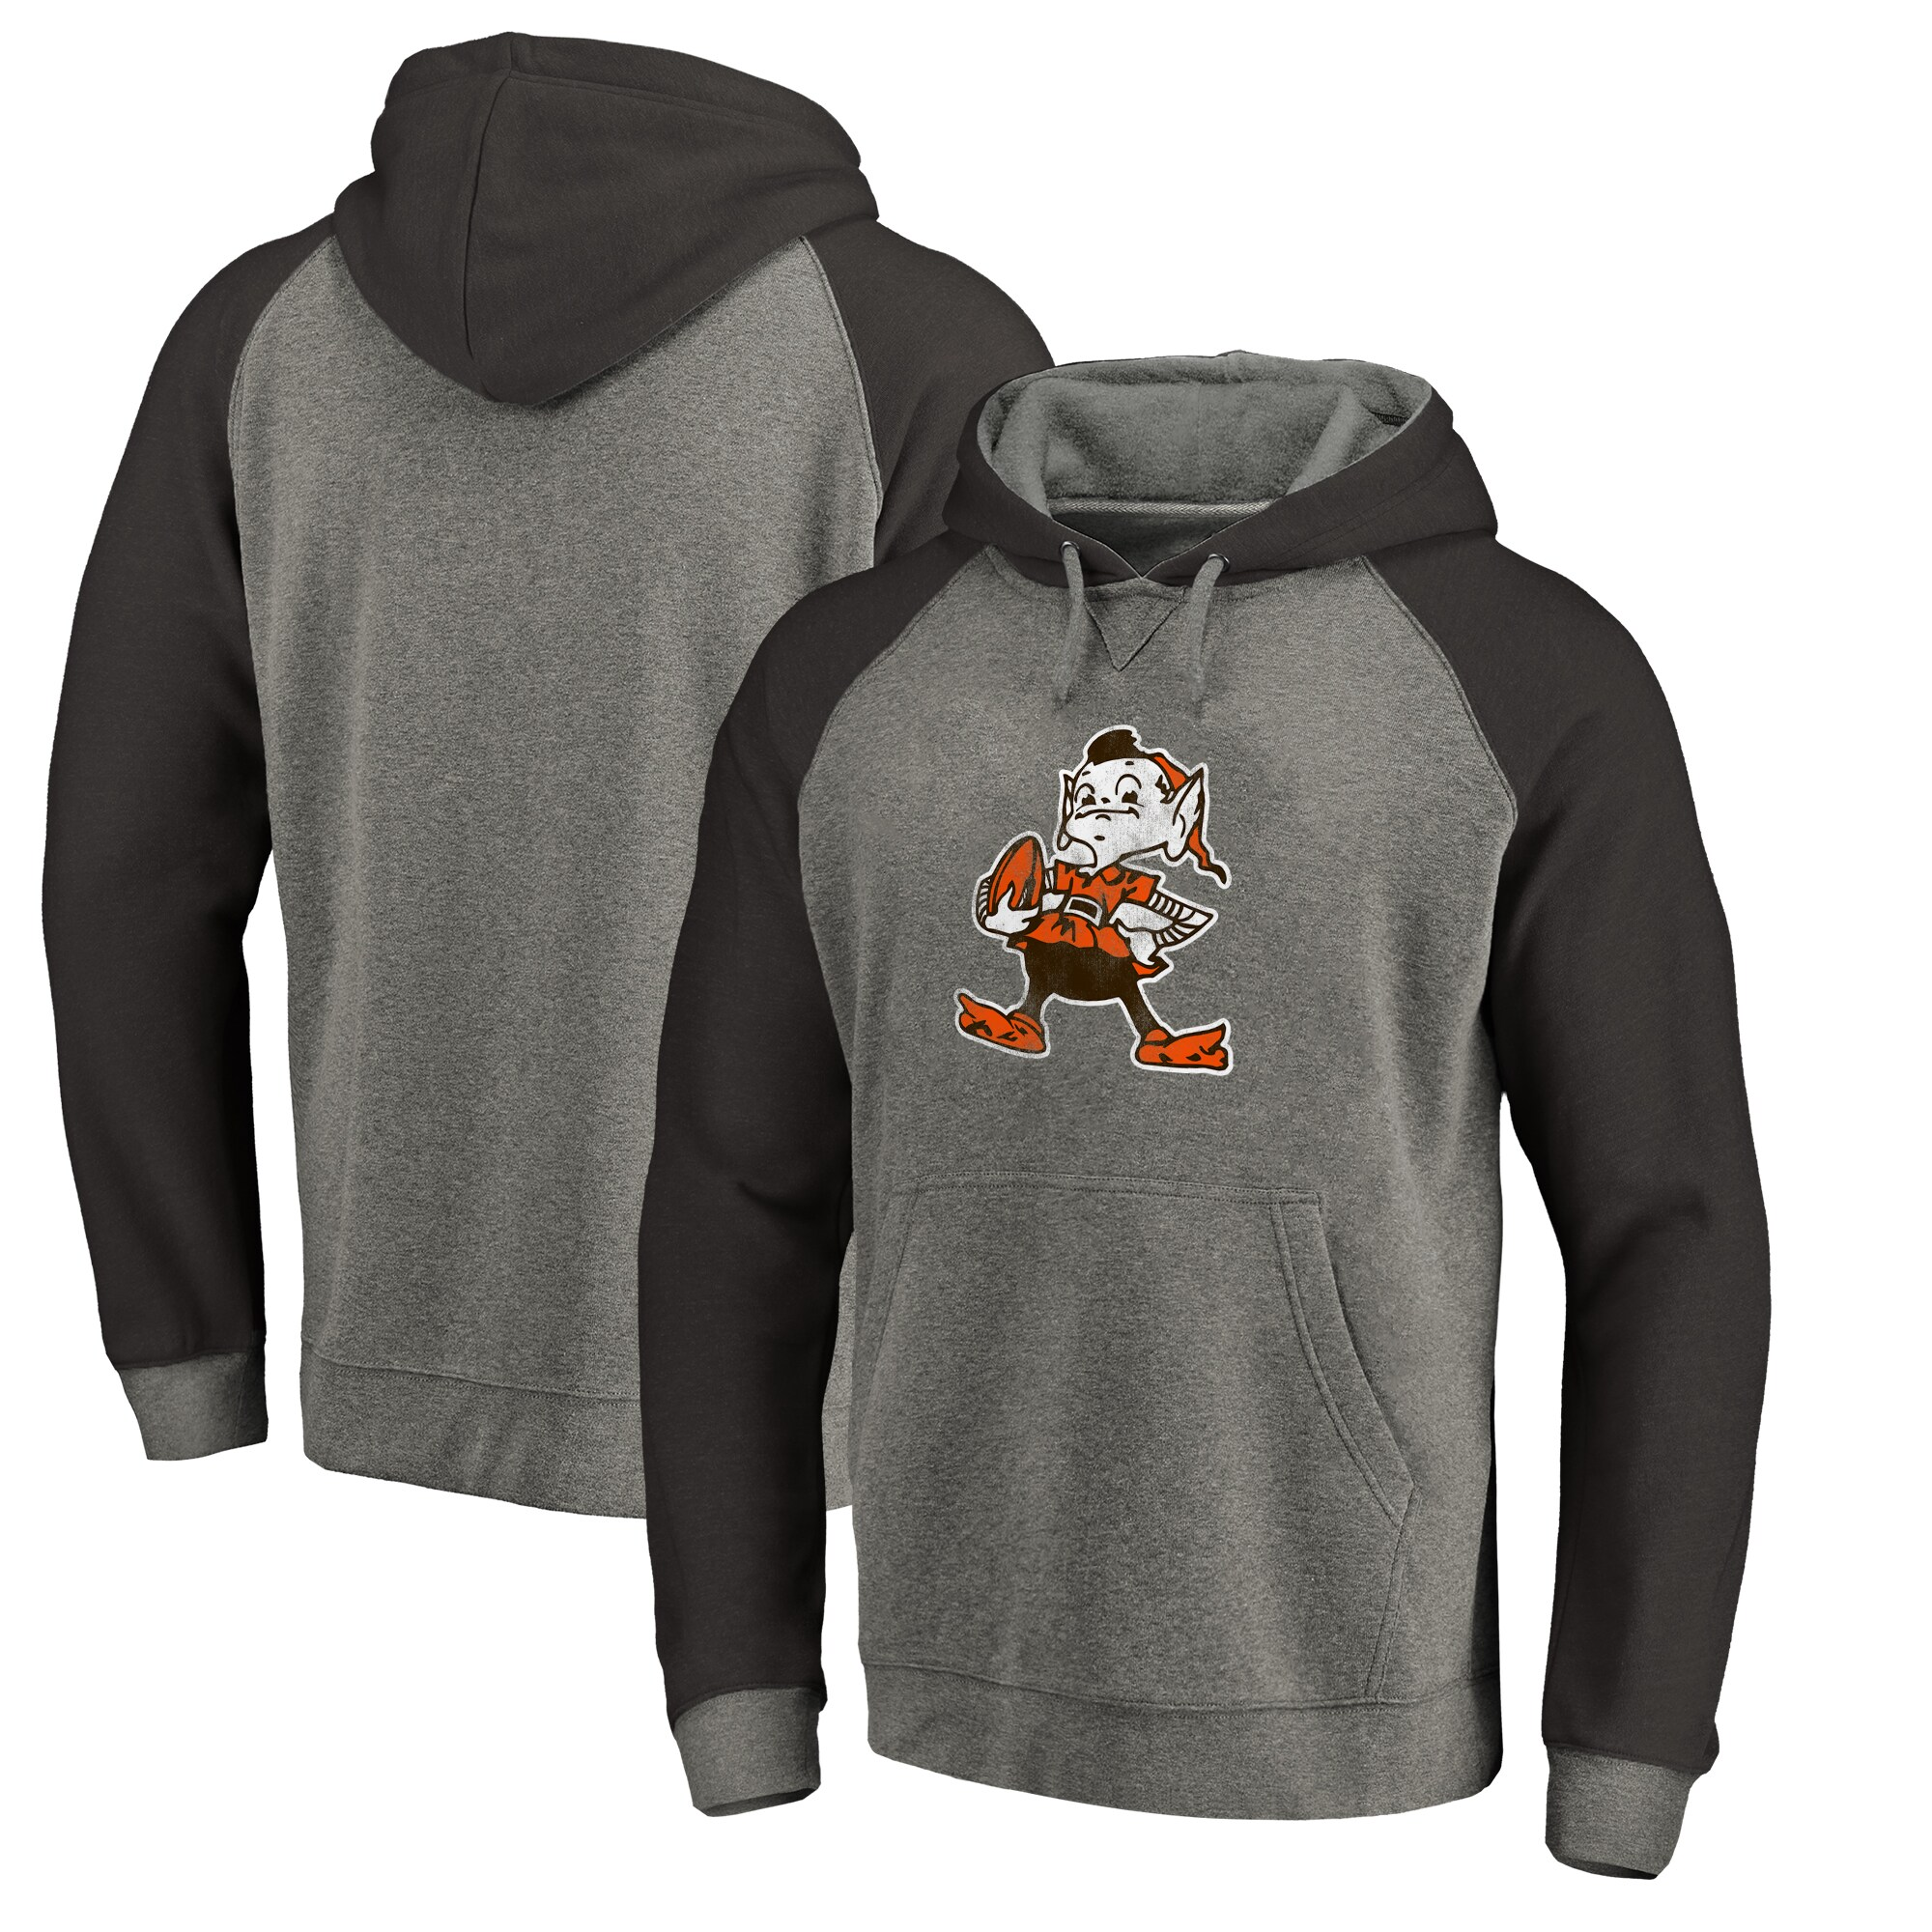 Cleveland Browns NFL Pro Line by Fanatics Branded Throwback Logo Tri-Blend Raglan Pullover Hoodie - Gray/Black